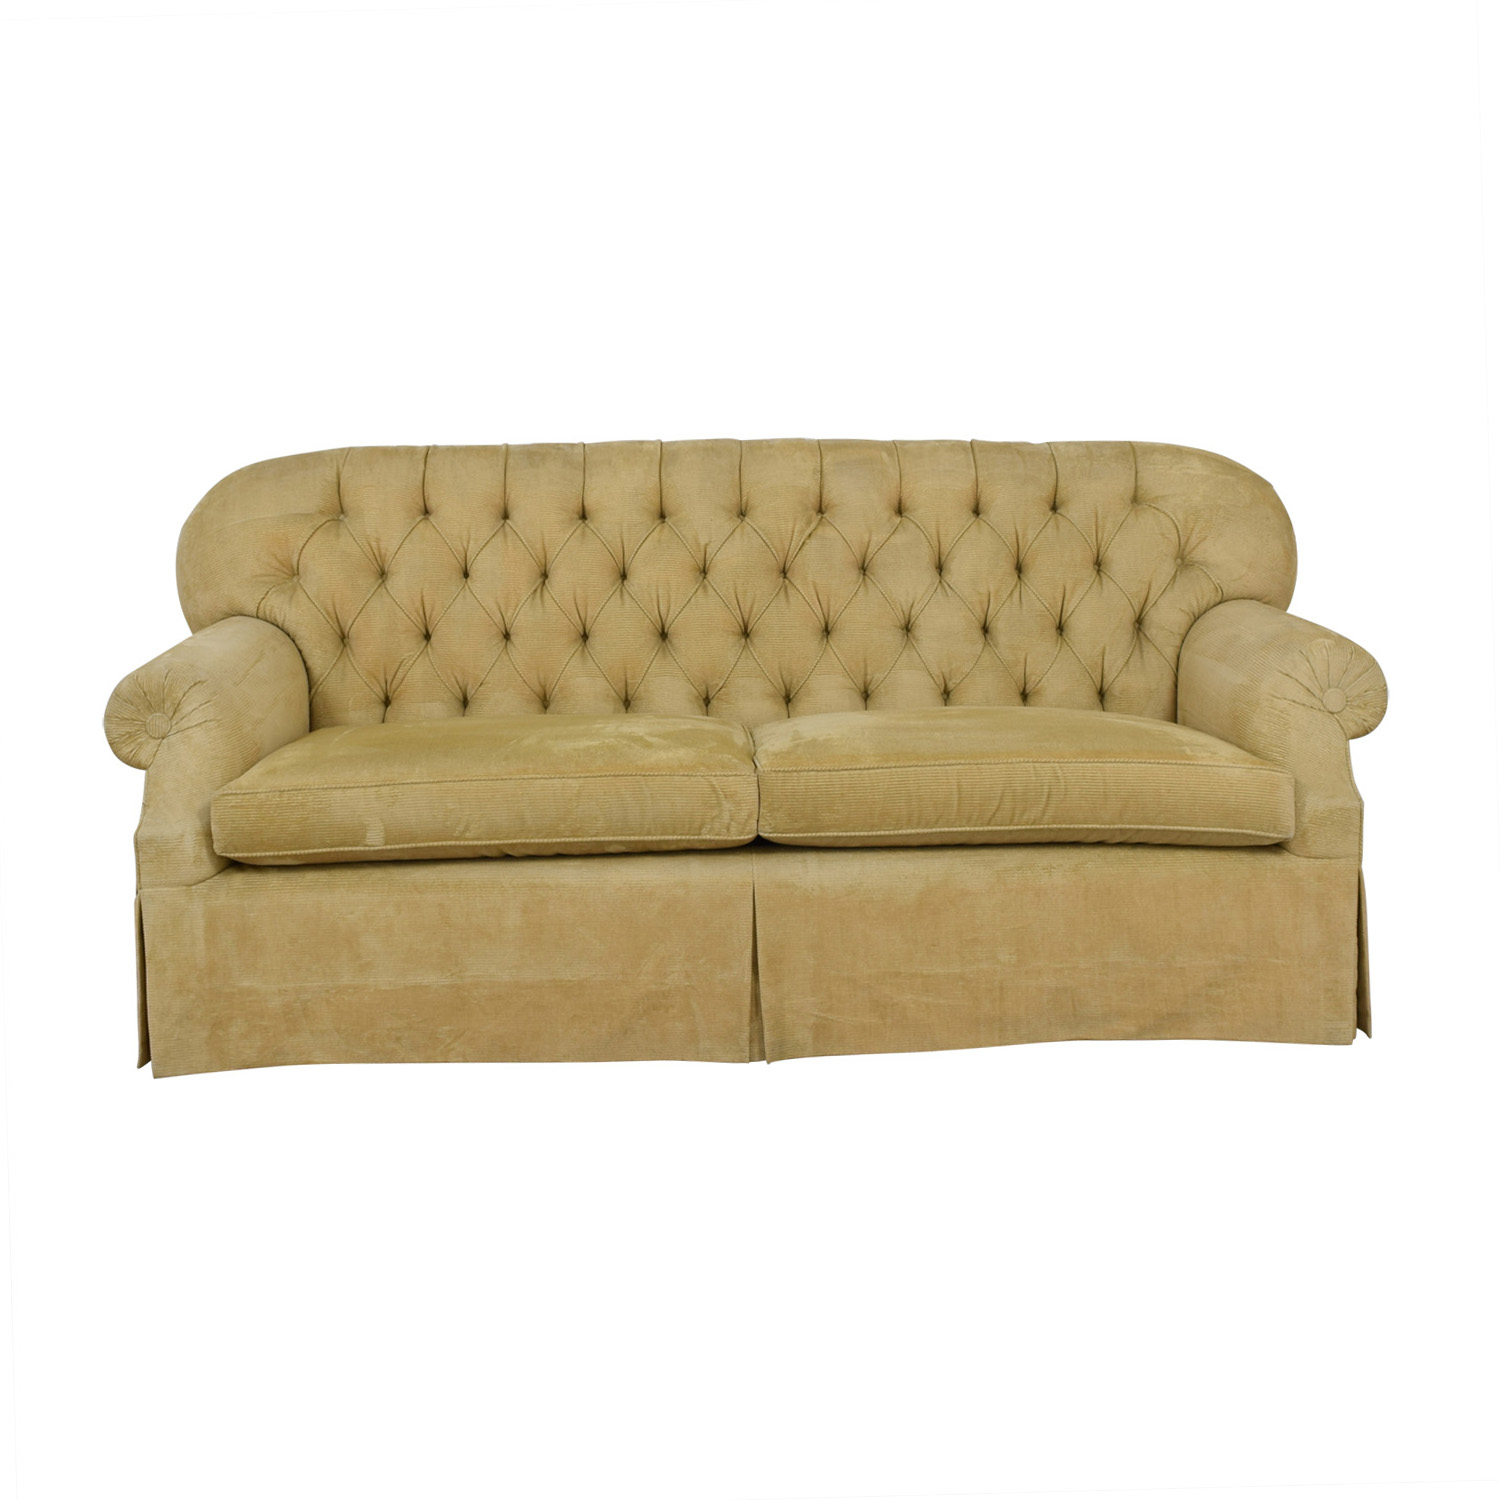 75 Off Furniture Masters Furniture Masters Beige Tufted Two Cushion Sofa Sofas